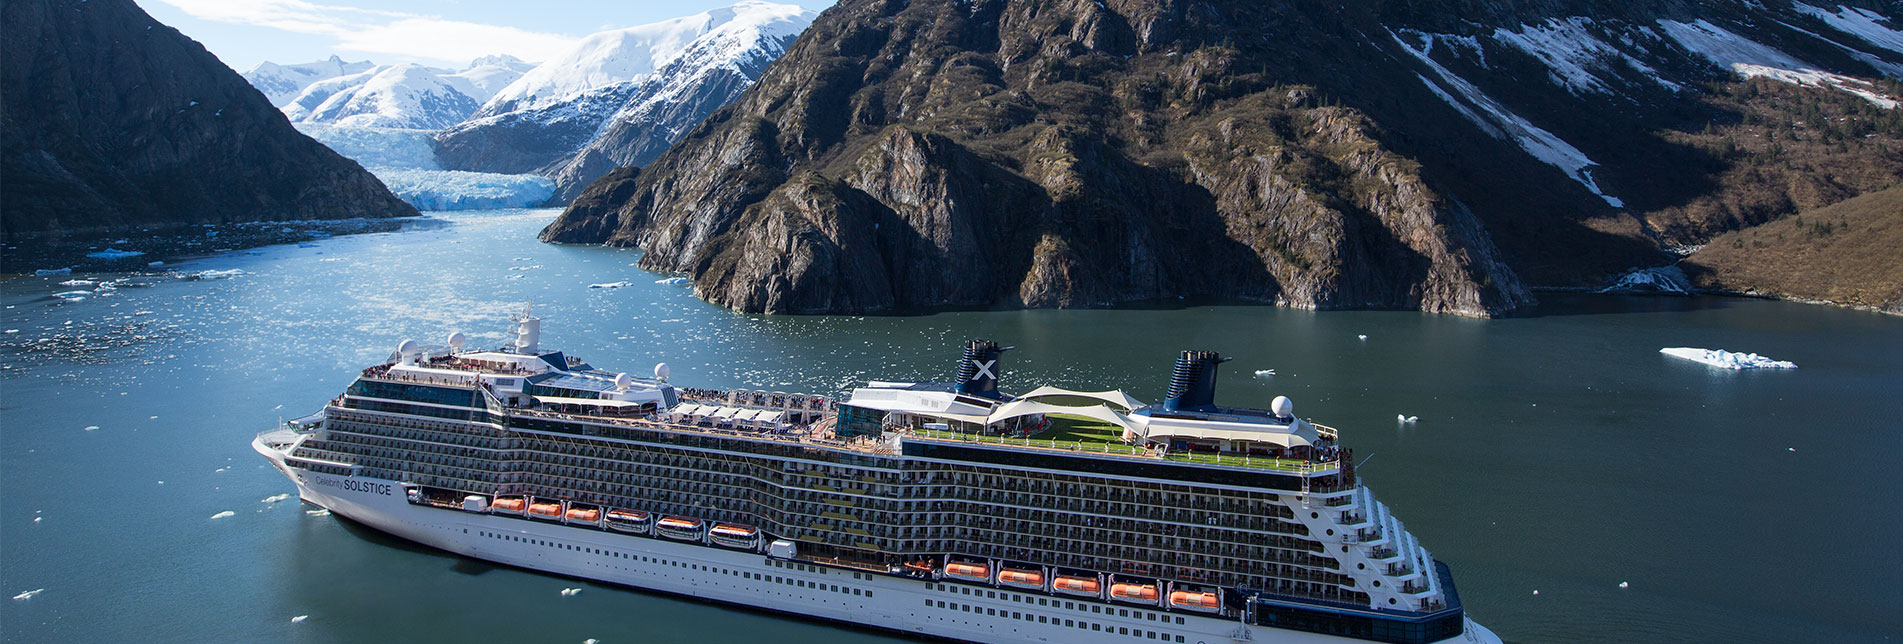 Celebrity Solstic - Celebrity Cruise Lines